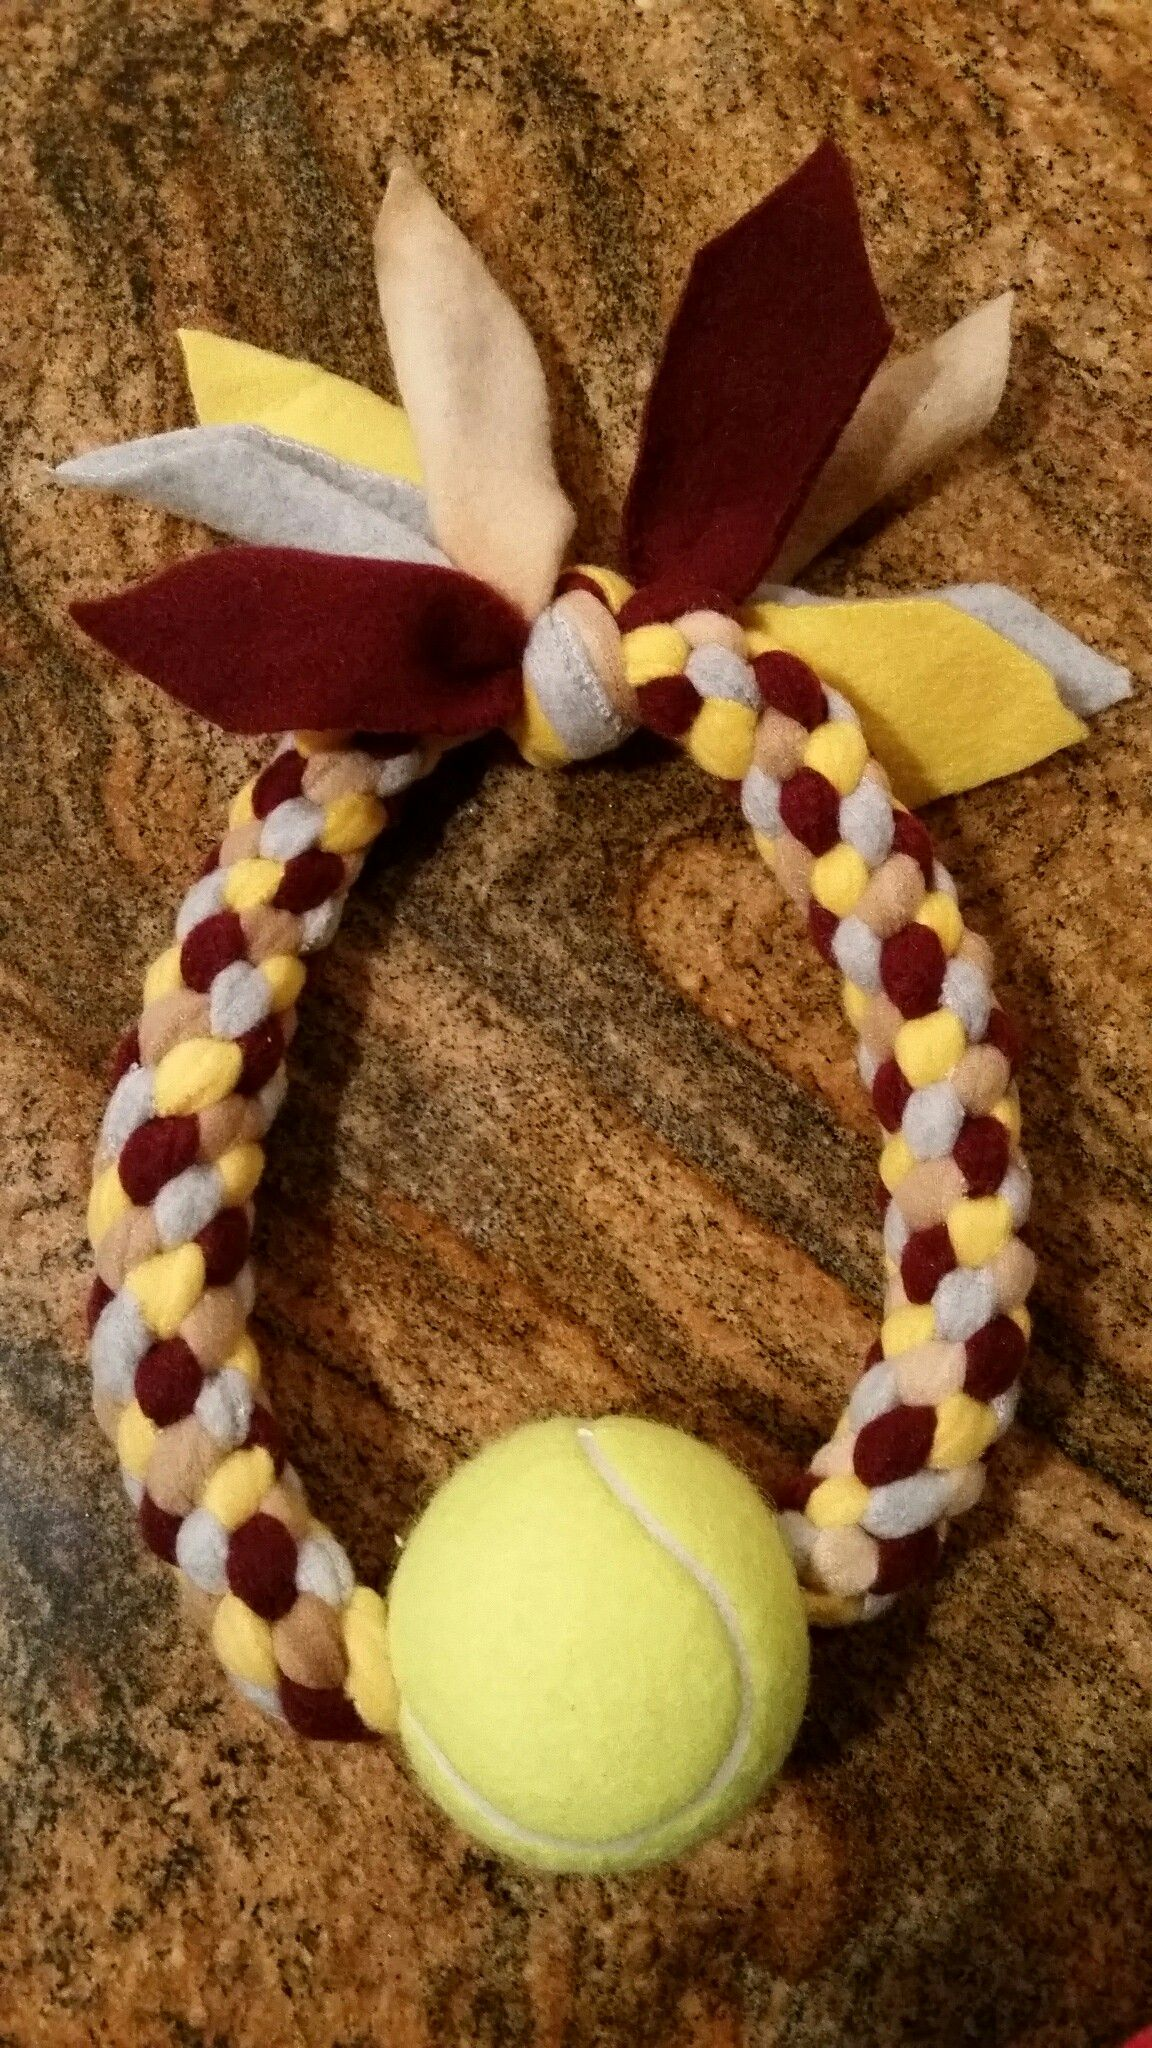 Diy Dog Toy Fleece And Tennis Ball With Images Diy Dog Toys